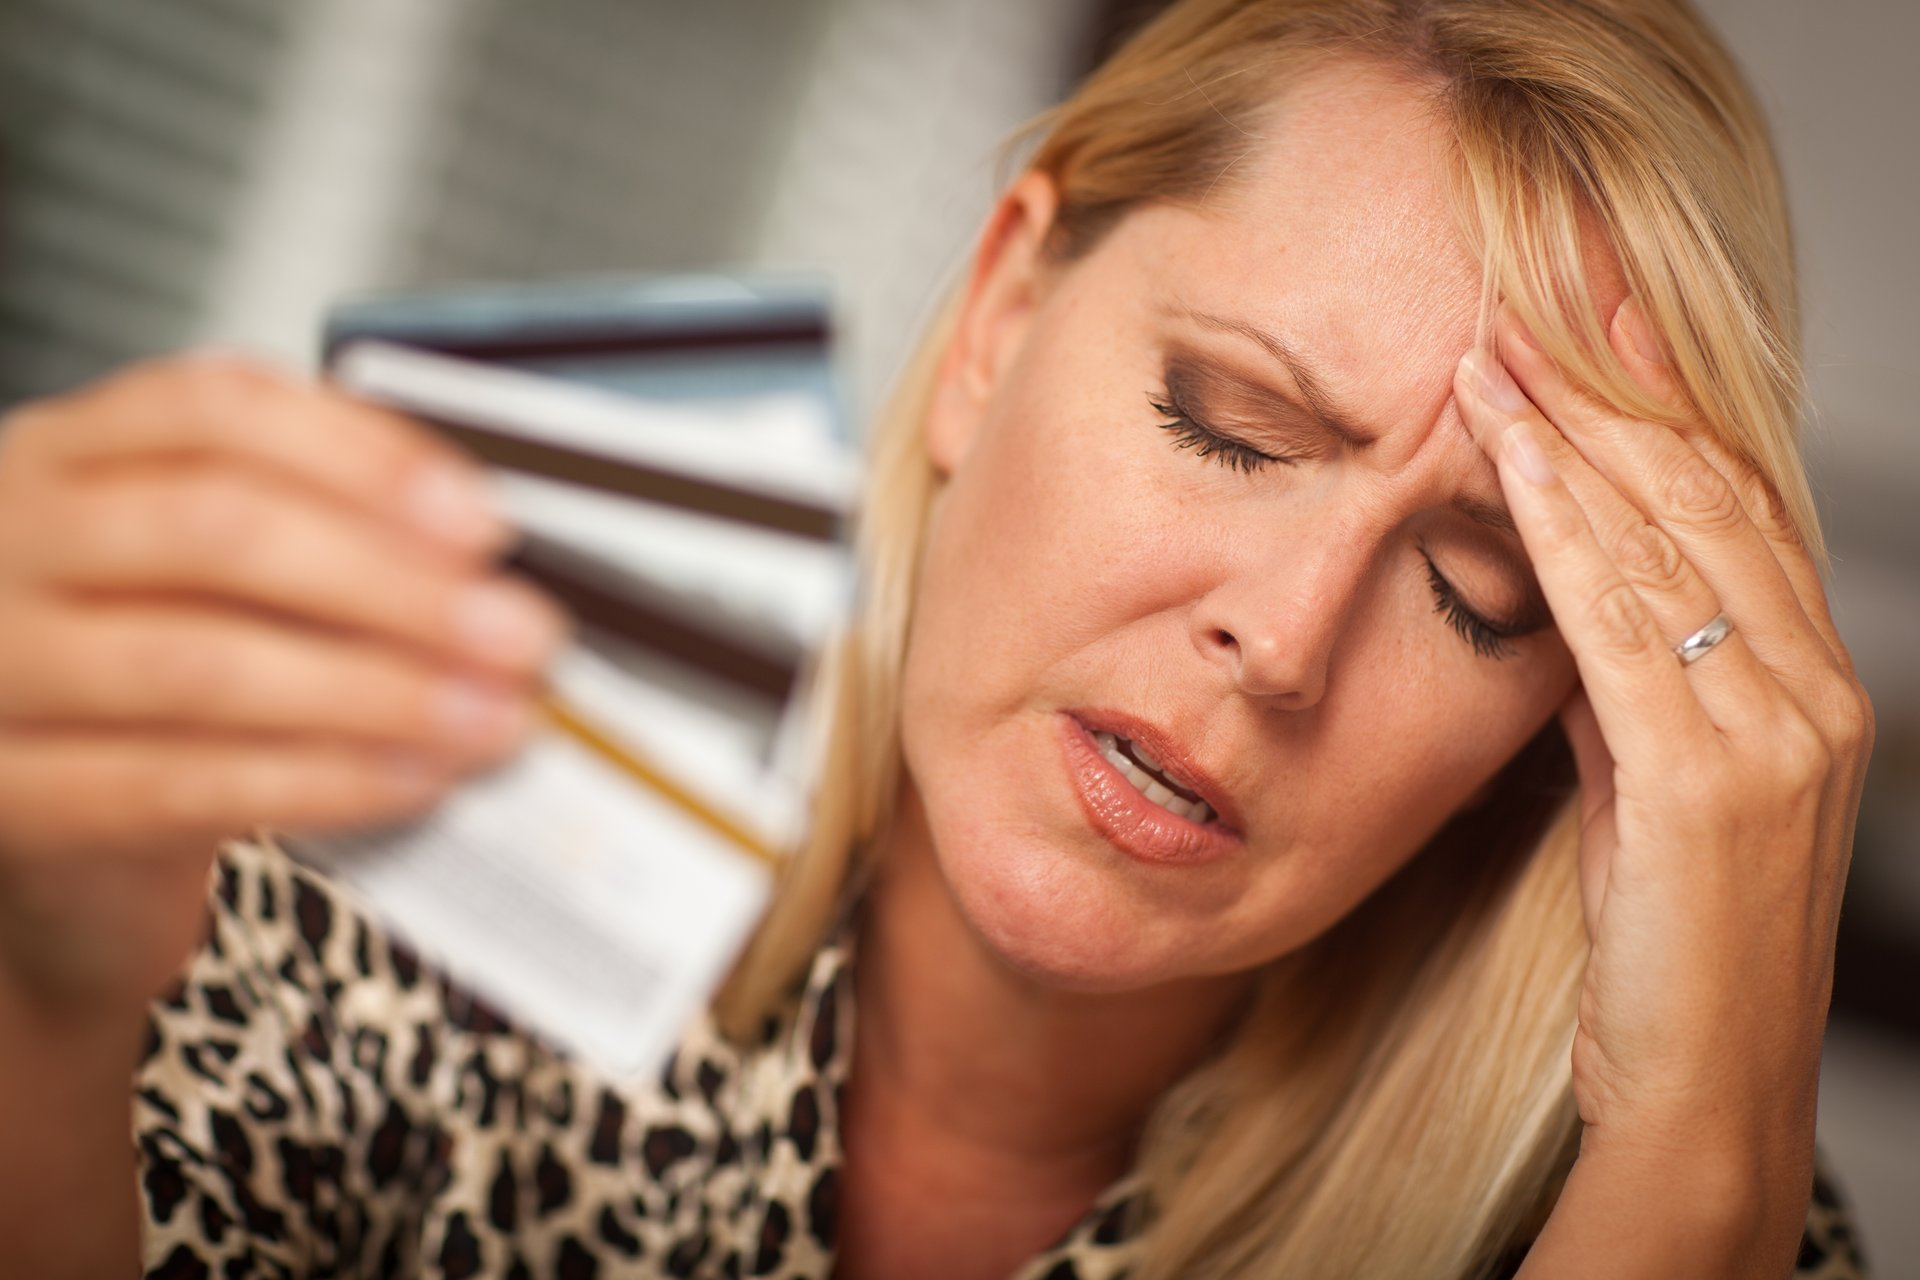 Depressed-looking woman with hand full of credit cards.